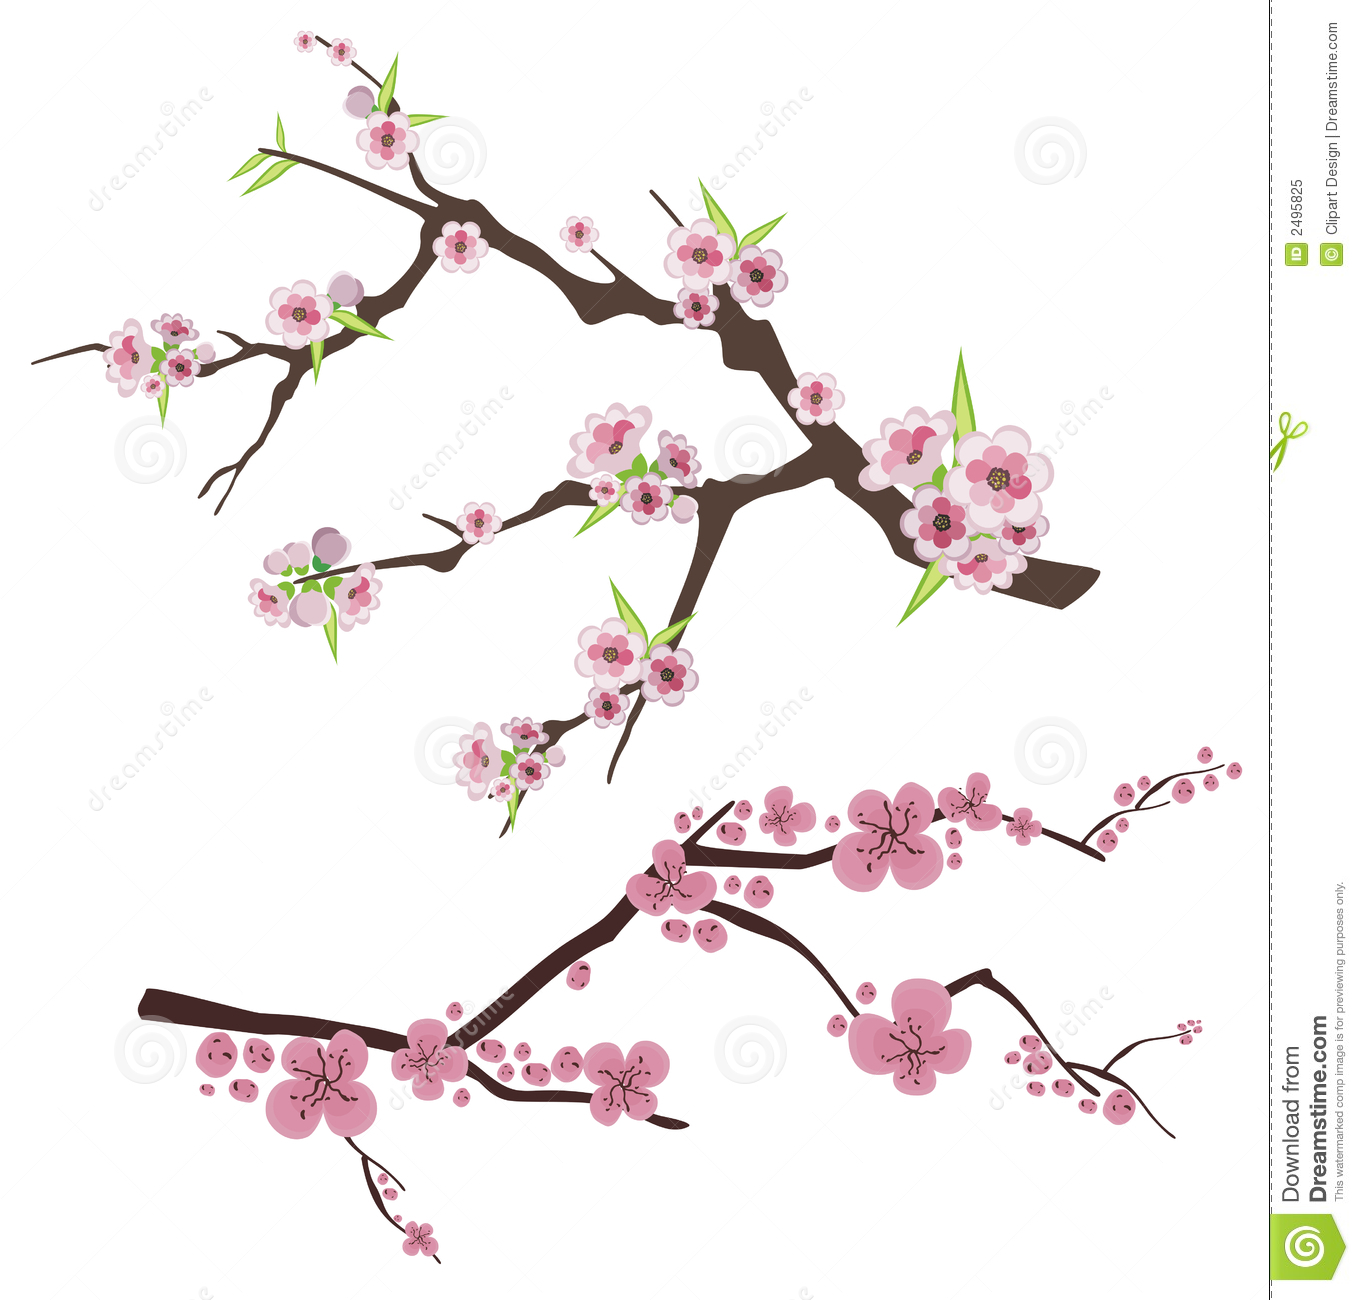 Lilac Flower Meaning Floral Branch Series Royalty Free Stock Photo Image 2495825